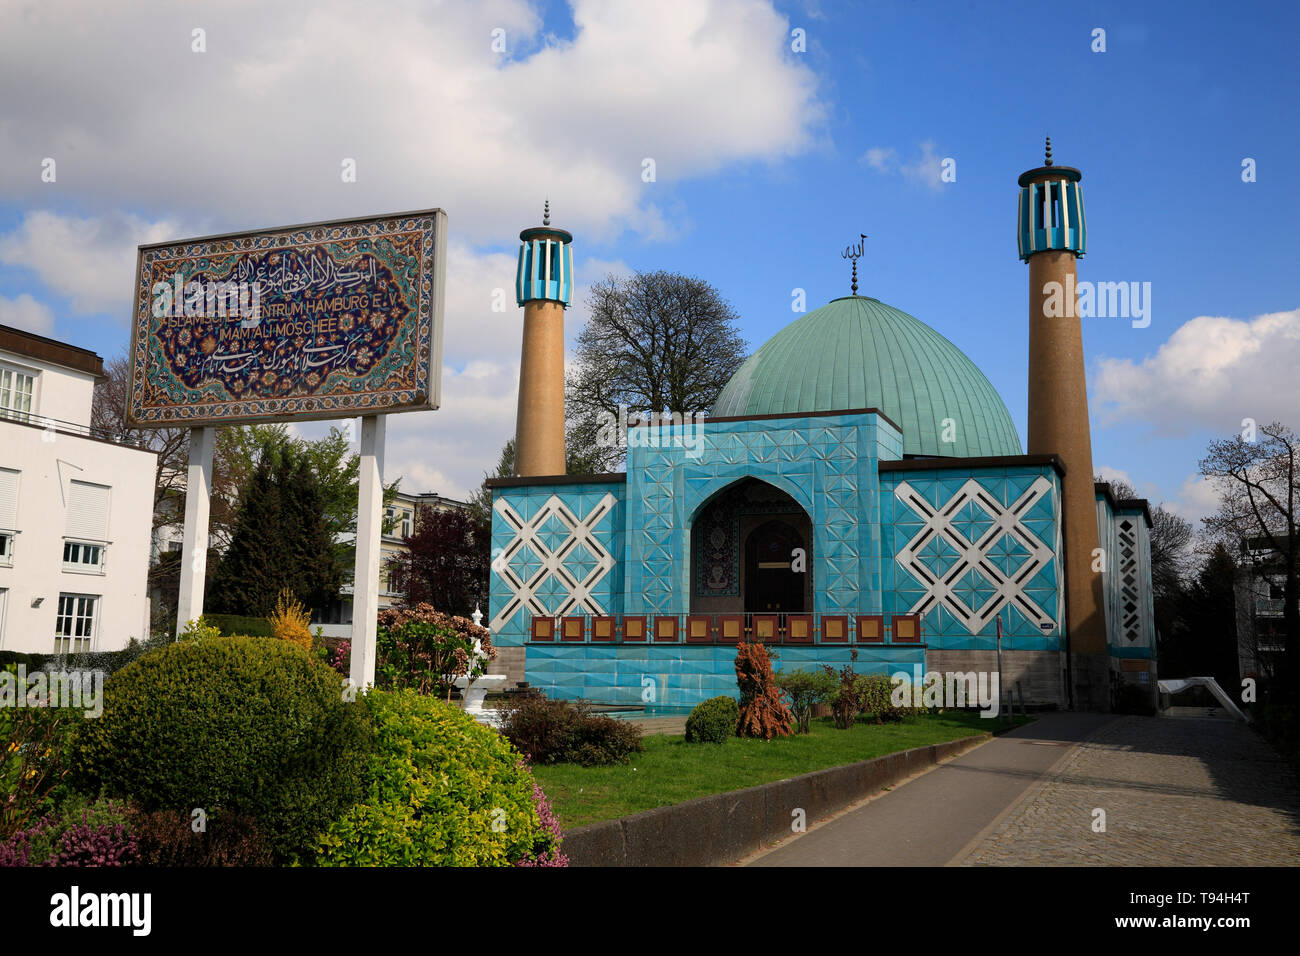 Imam-Ali-Moschee (Blaue Moschee) near lake Alster,  Hamburg, Germany, Europe - Stock Image